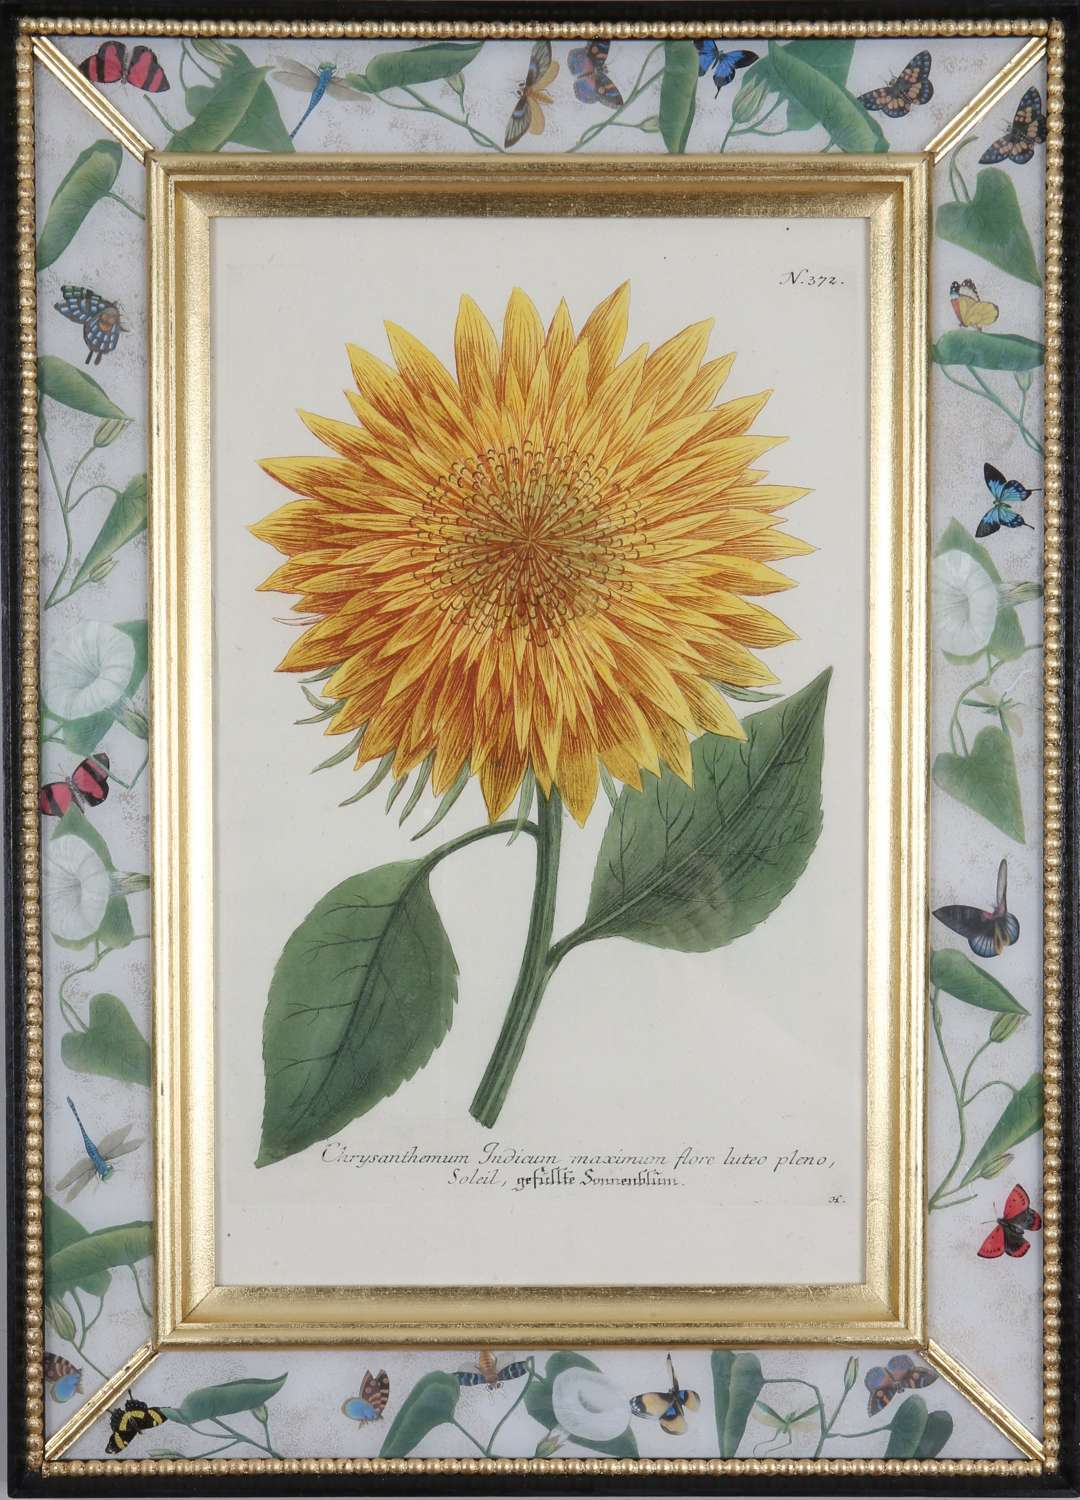 Johann Weinmann: 18th century engravings of sunflowers